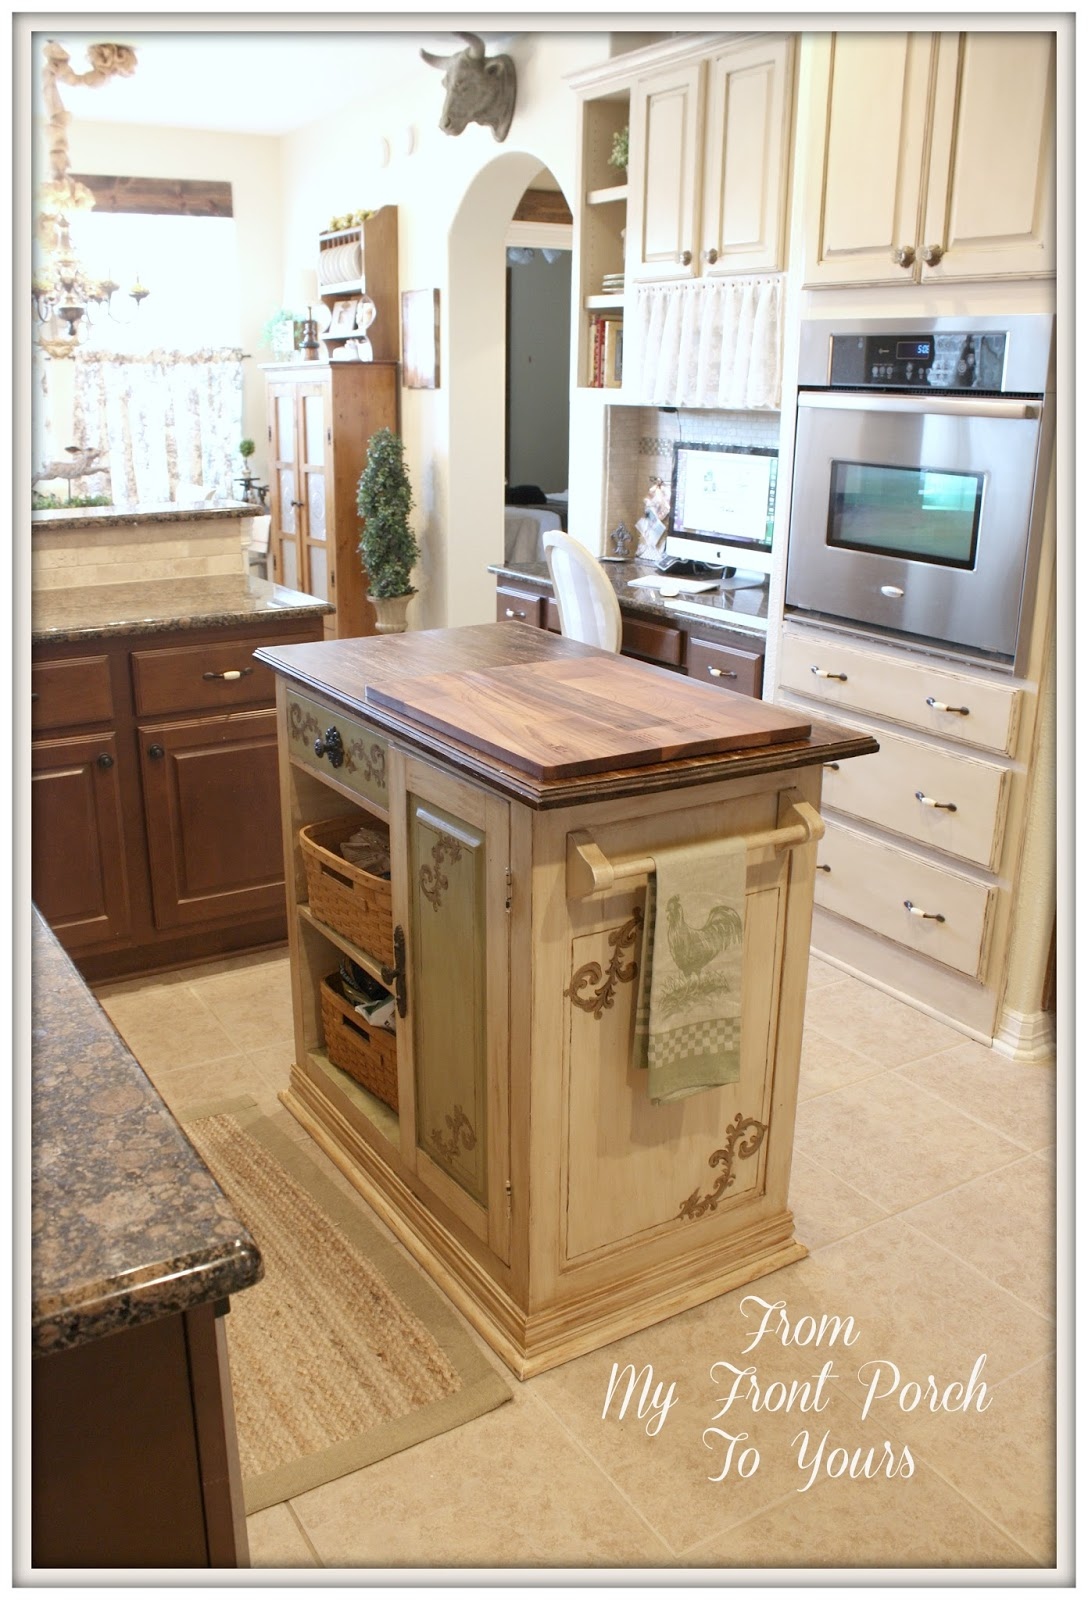 Painted Kitchen Islands Toy Hauler With Outdoor From My Front Porch To Yours French Farmhouse Diy